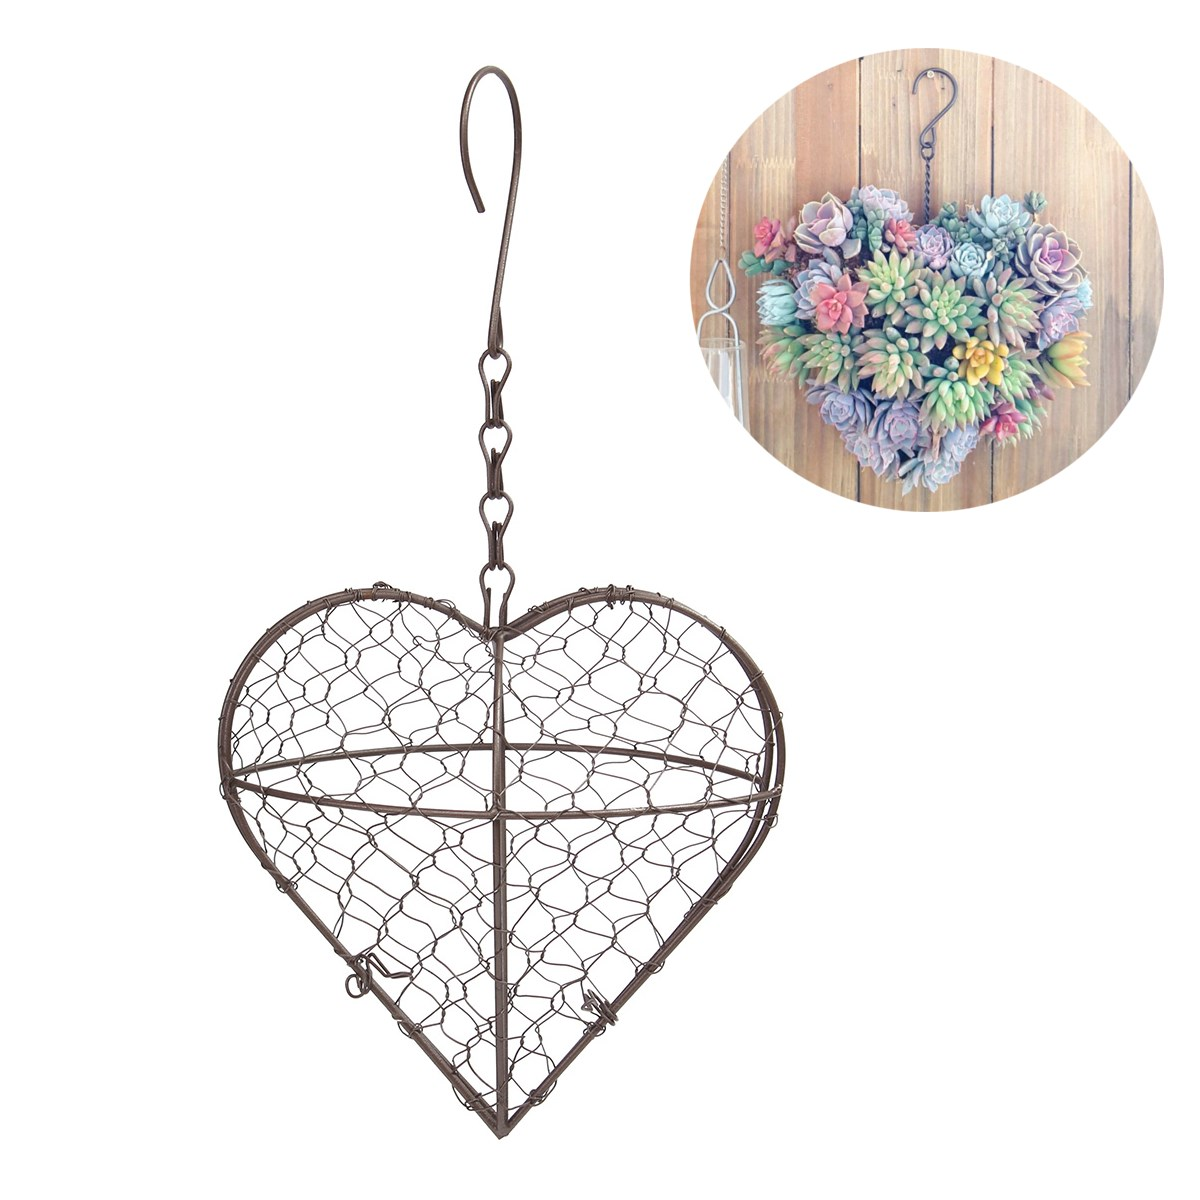 Cheap Hanging Baskets With Flowers : Get cheap hanging flower baskets aliexpress